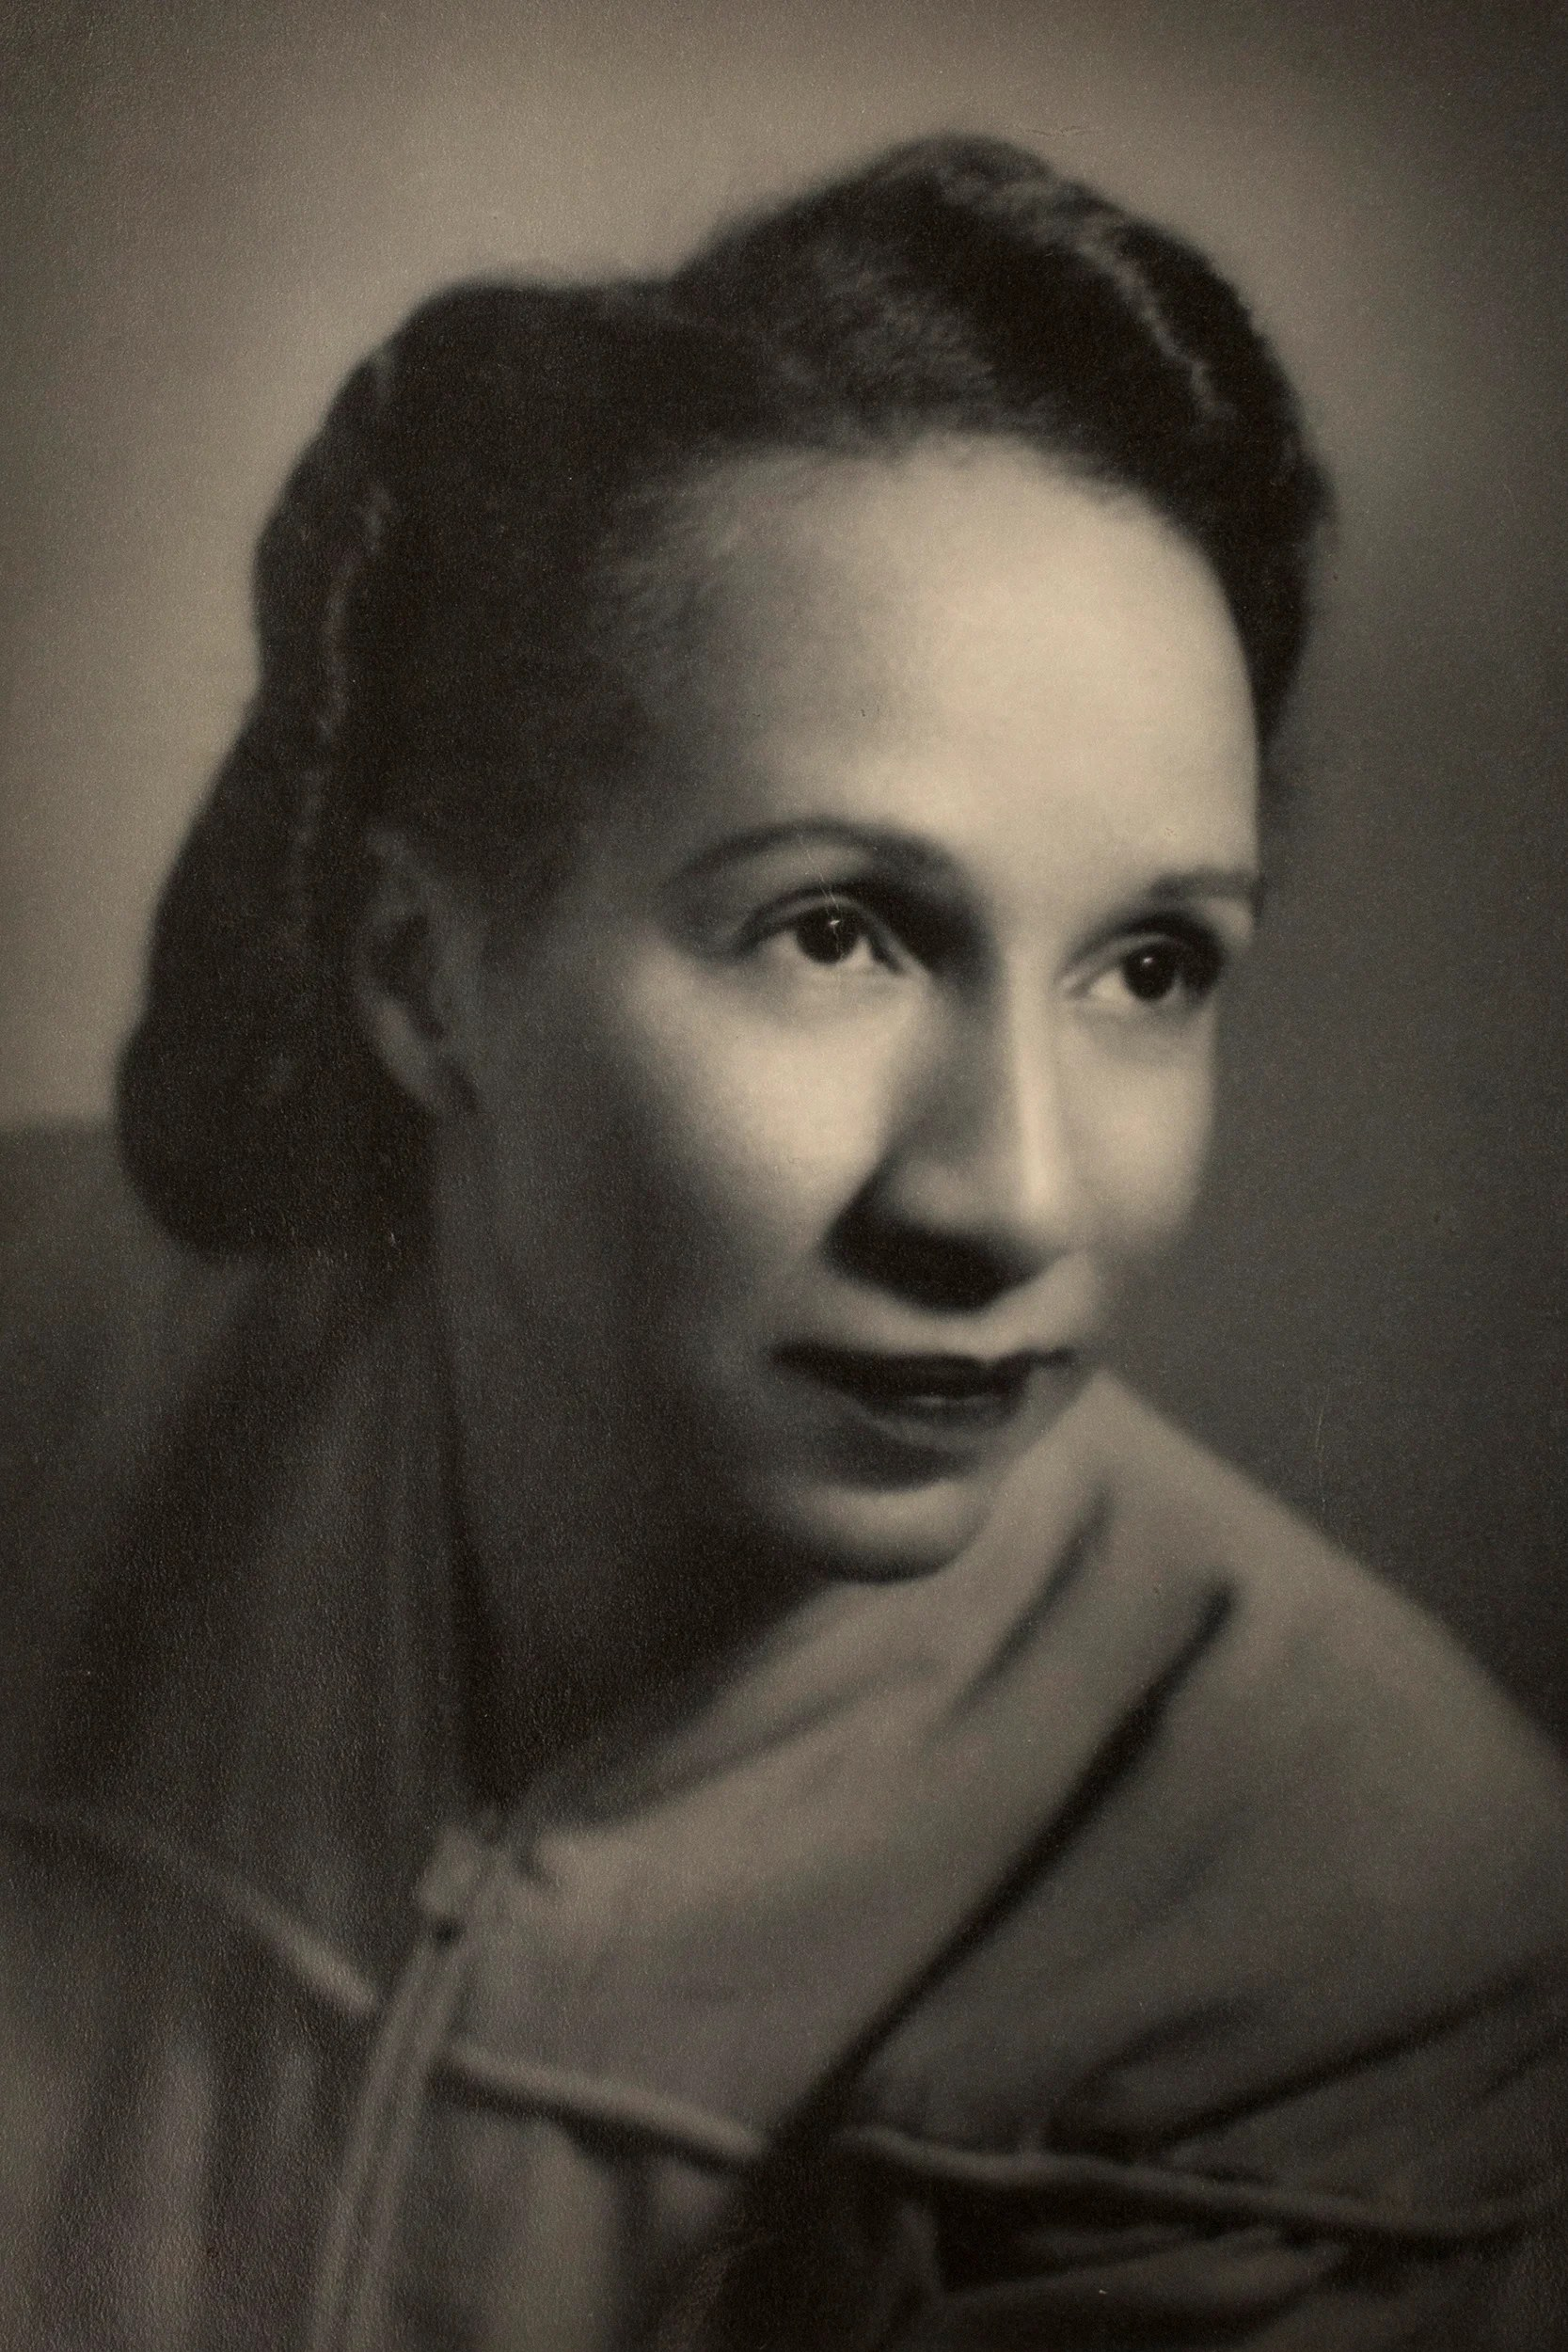 Shirley Graham married W.E.B. Du Bois in 1951. In 2001, her son donated her papers to Radcliffe and the W.E.B. Du Bois Institute for Afro-American Research (now the Hutchins Center)